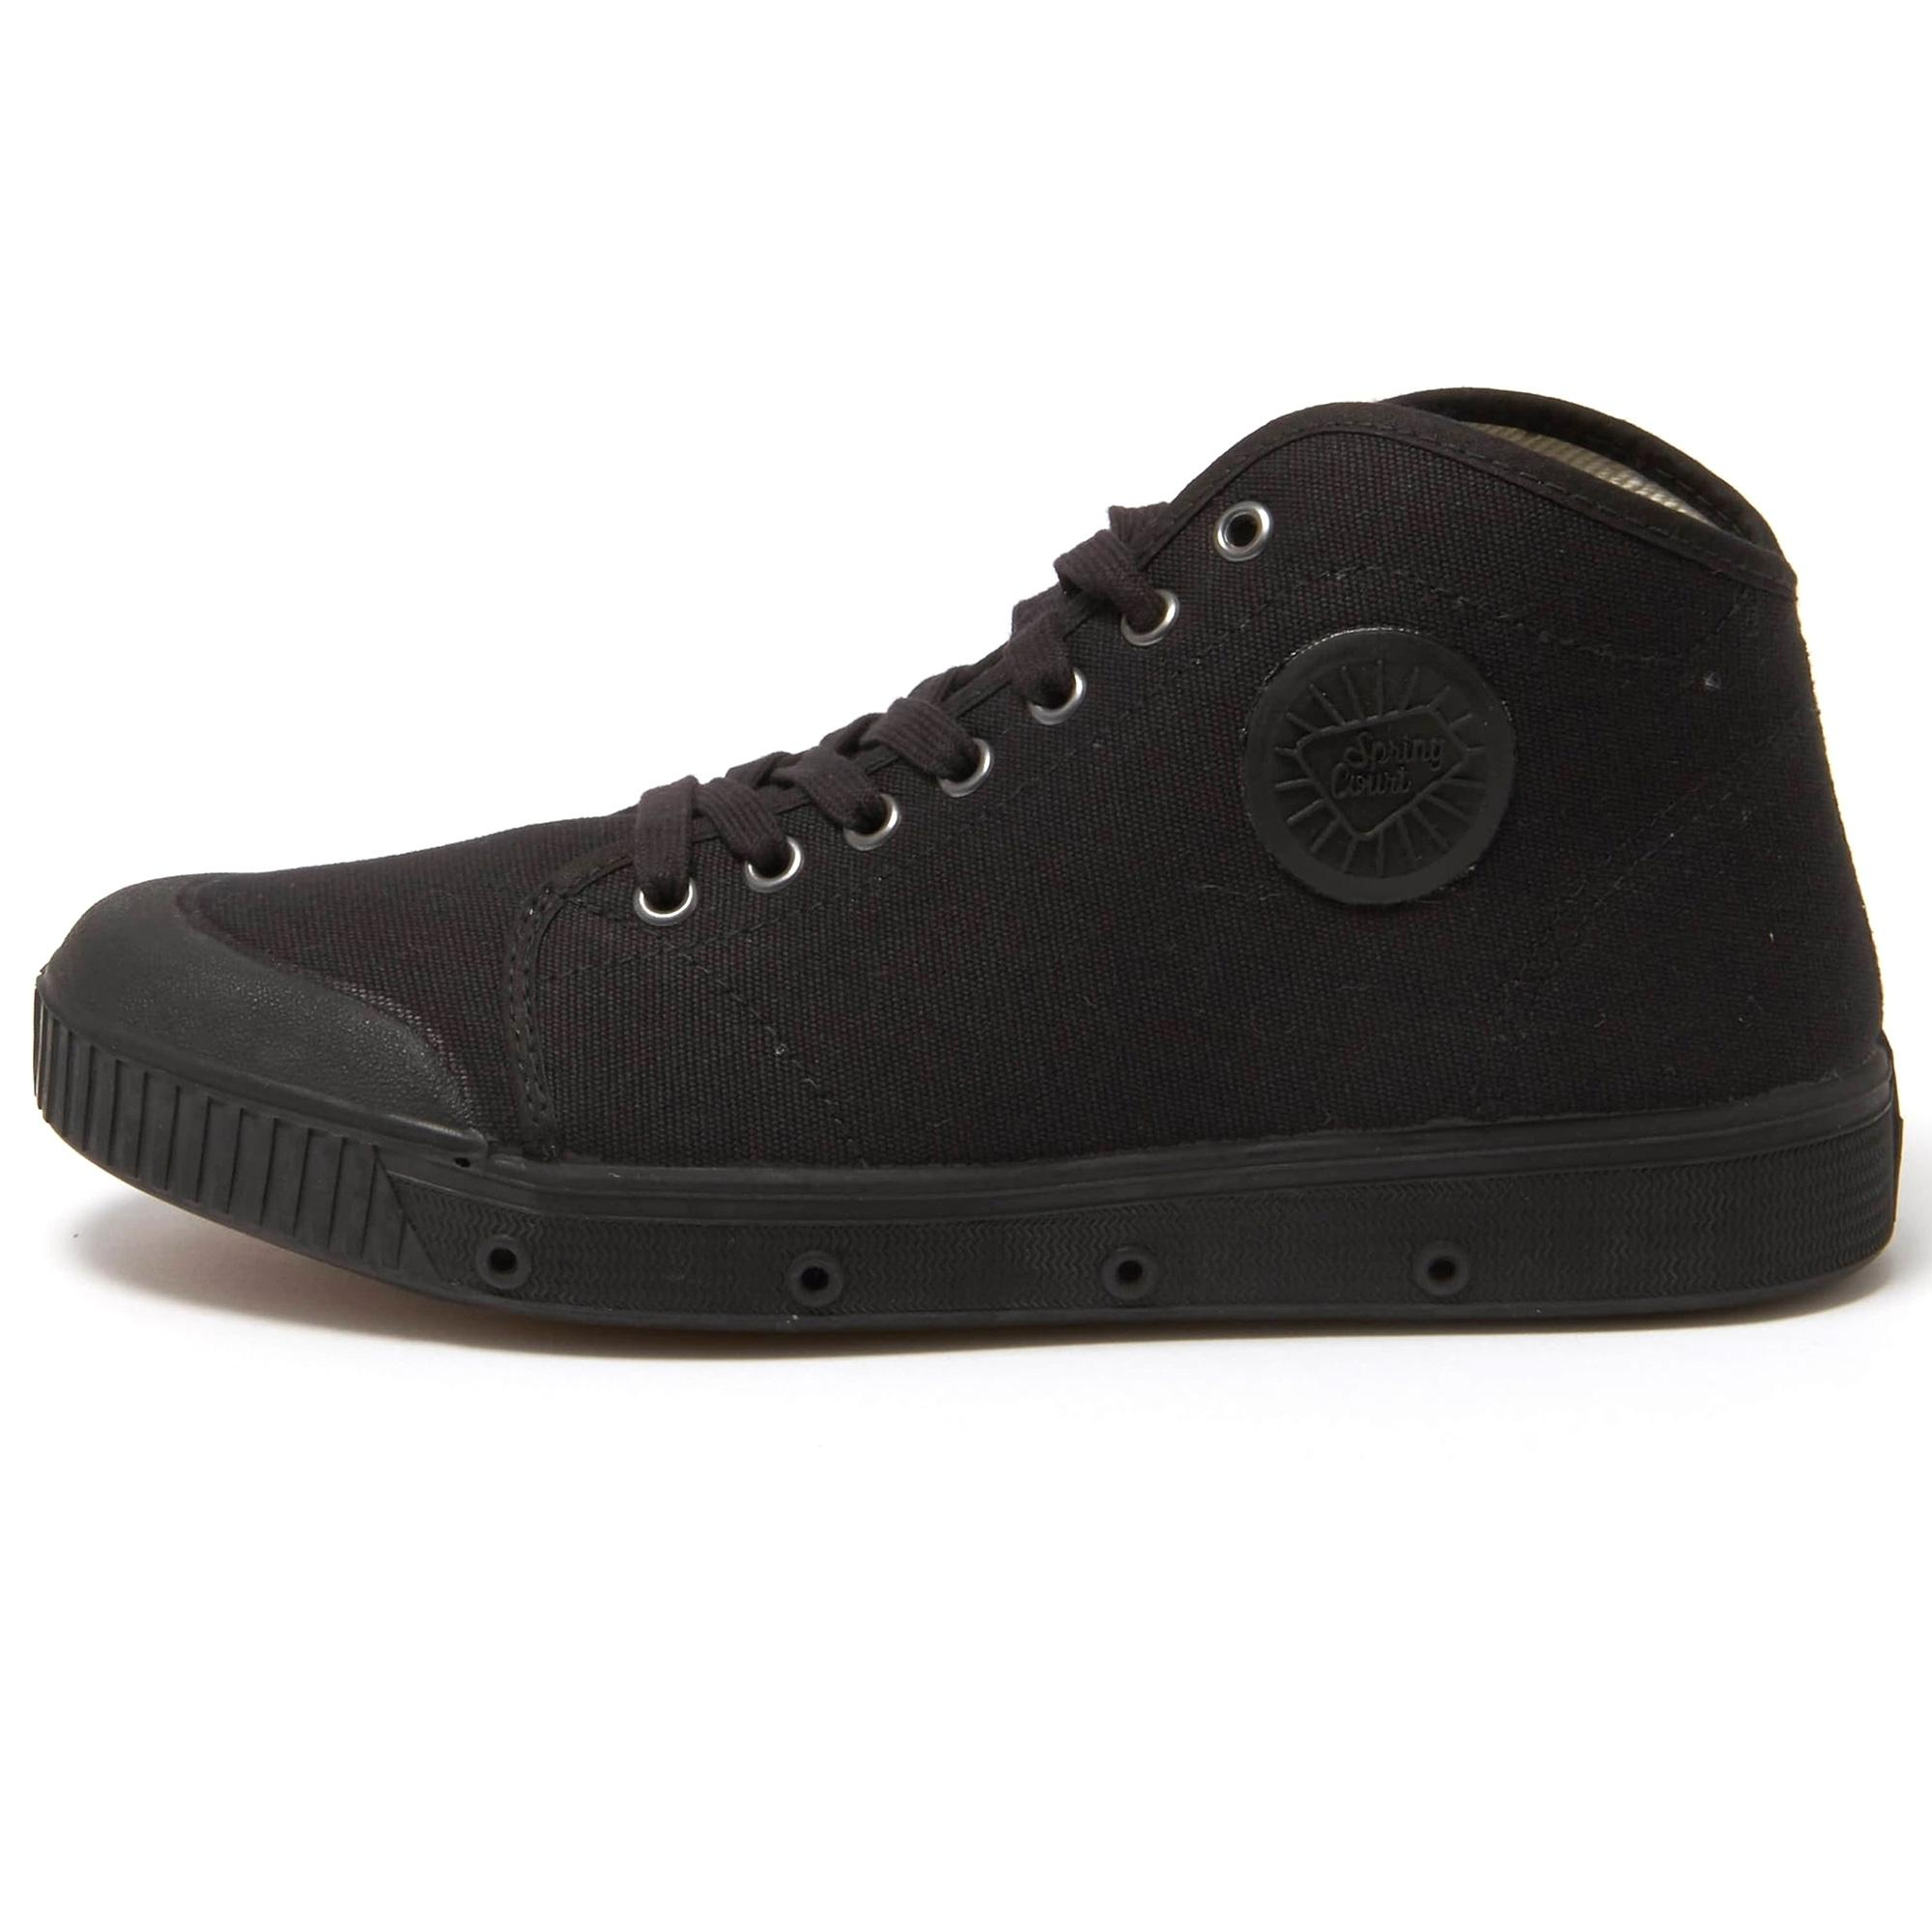 Spring Court B2 Canvas Shoe in Black